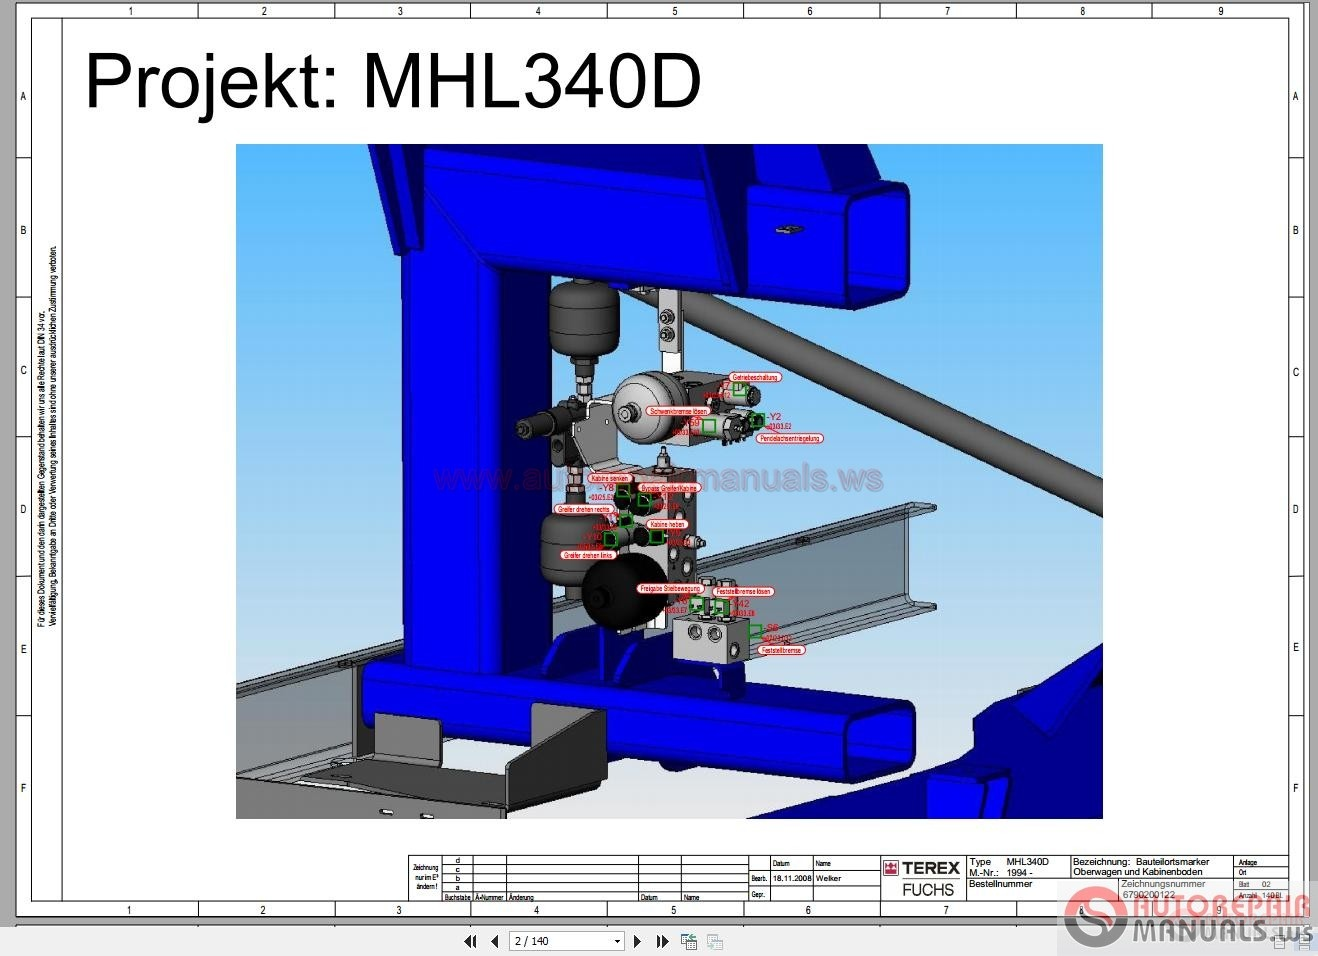 Jlg Forklift Parts Diagram in addition 648528 Aussie 964c2 Maintenance Diary Pic Heavy 3 further Sky Jack 1108 besides New Holland Tc33d Tractor Parts Diagrams likewise Suzuki Gn400 Electrical Wiring Diagram. on skyjack wiring diagrams